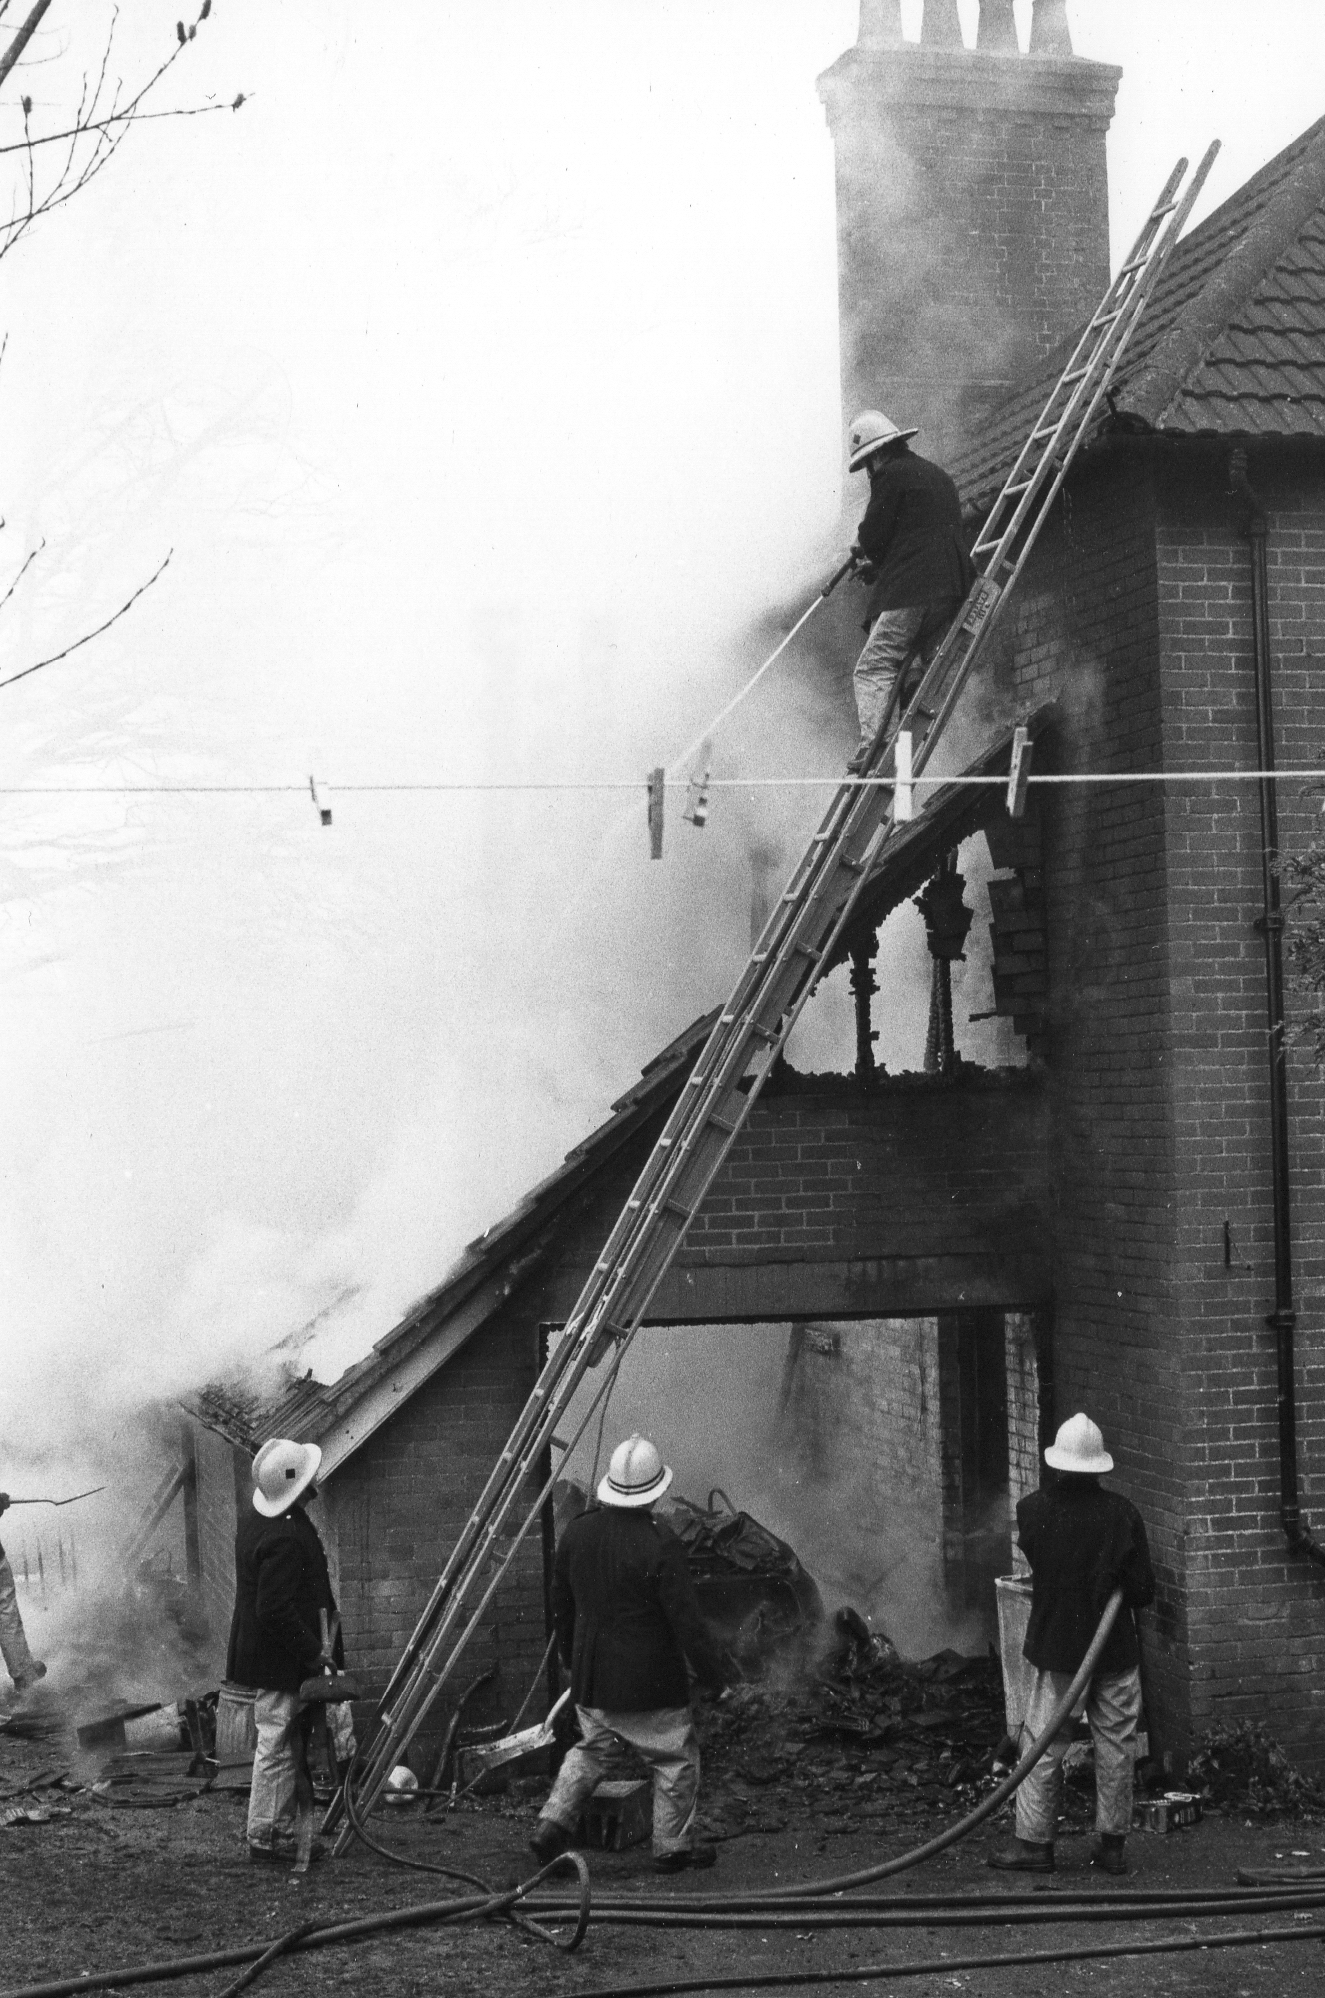 Bratton Clovelly Fire, April 4th, 1984. Photo courtesy of Gary Chapman.